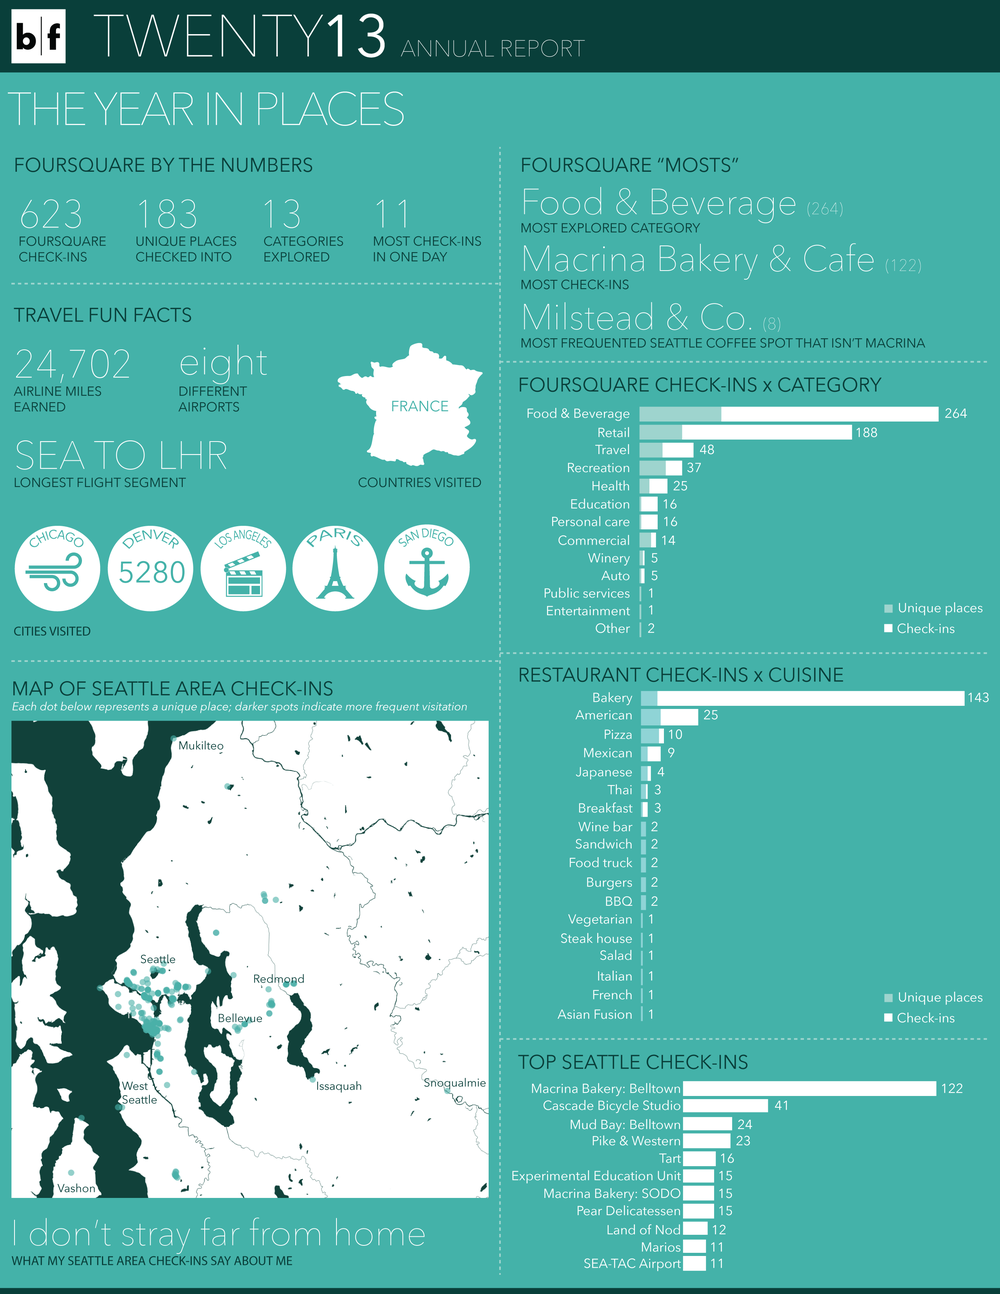 BF annual report_2013_where-01.png